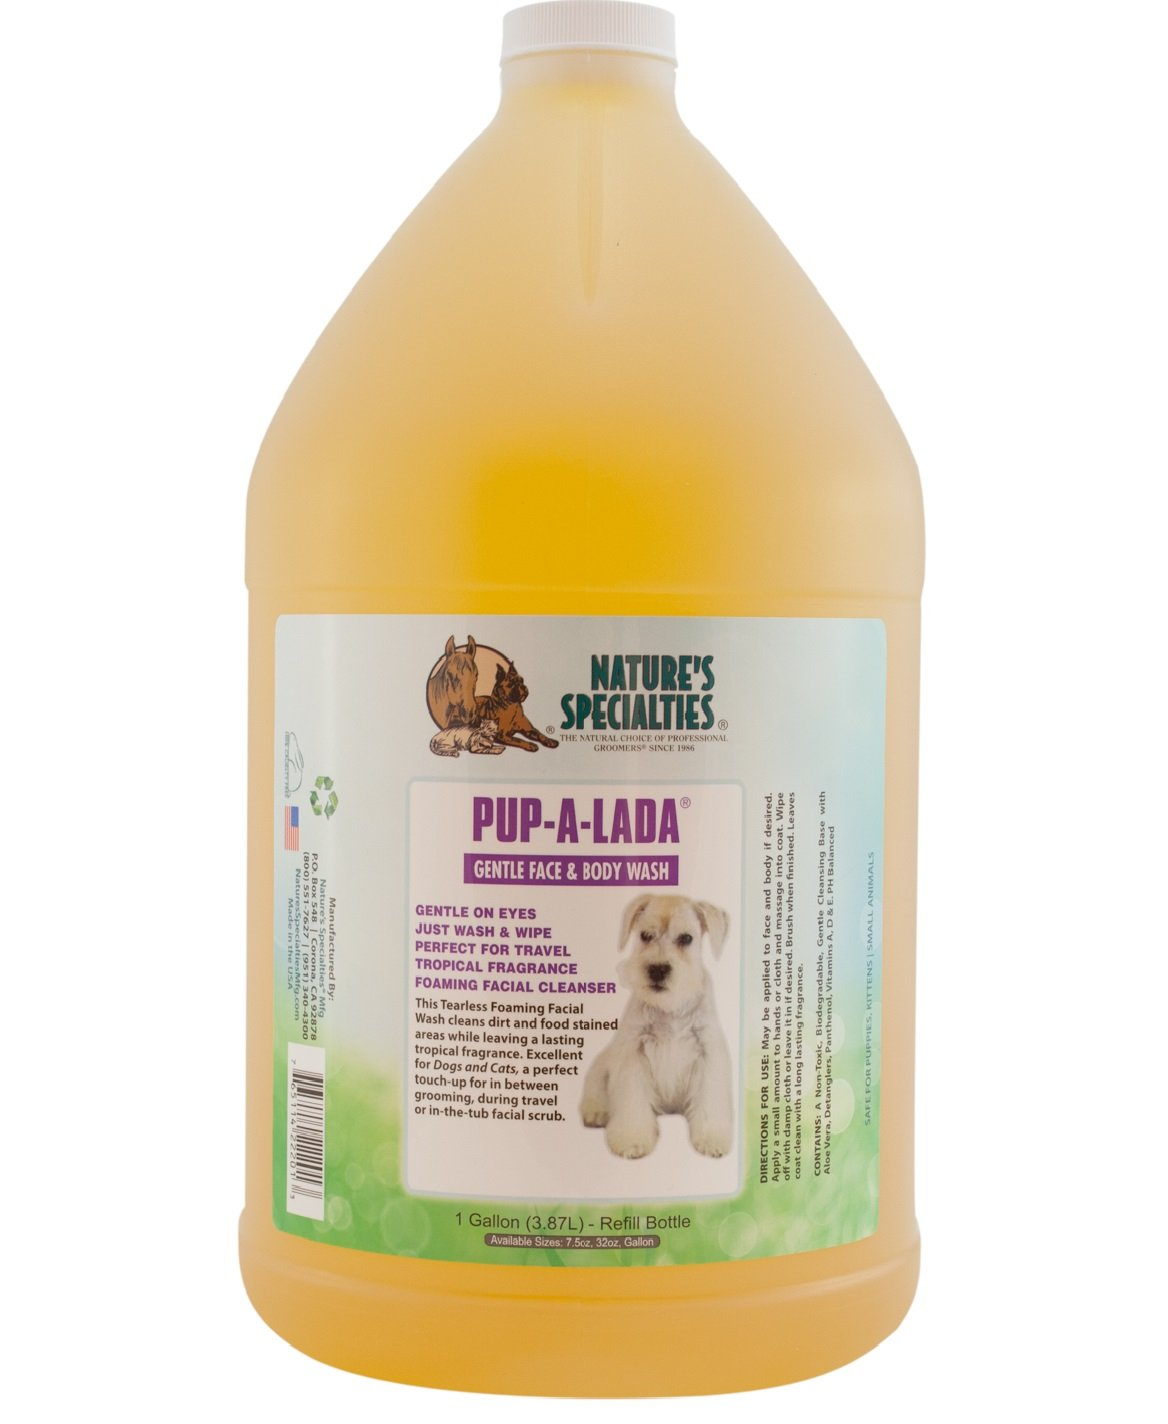 Nature's Specialties Pup-A-Lada Foaming Facial Wash for Pets by Nature's Specialties Mfg